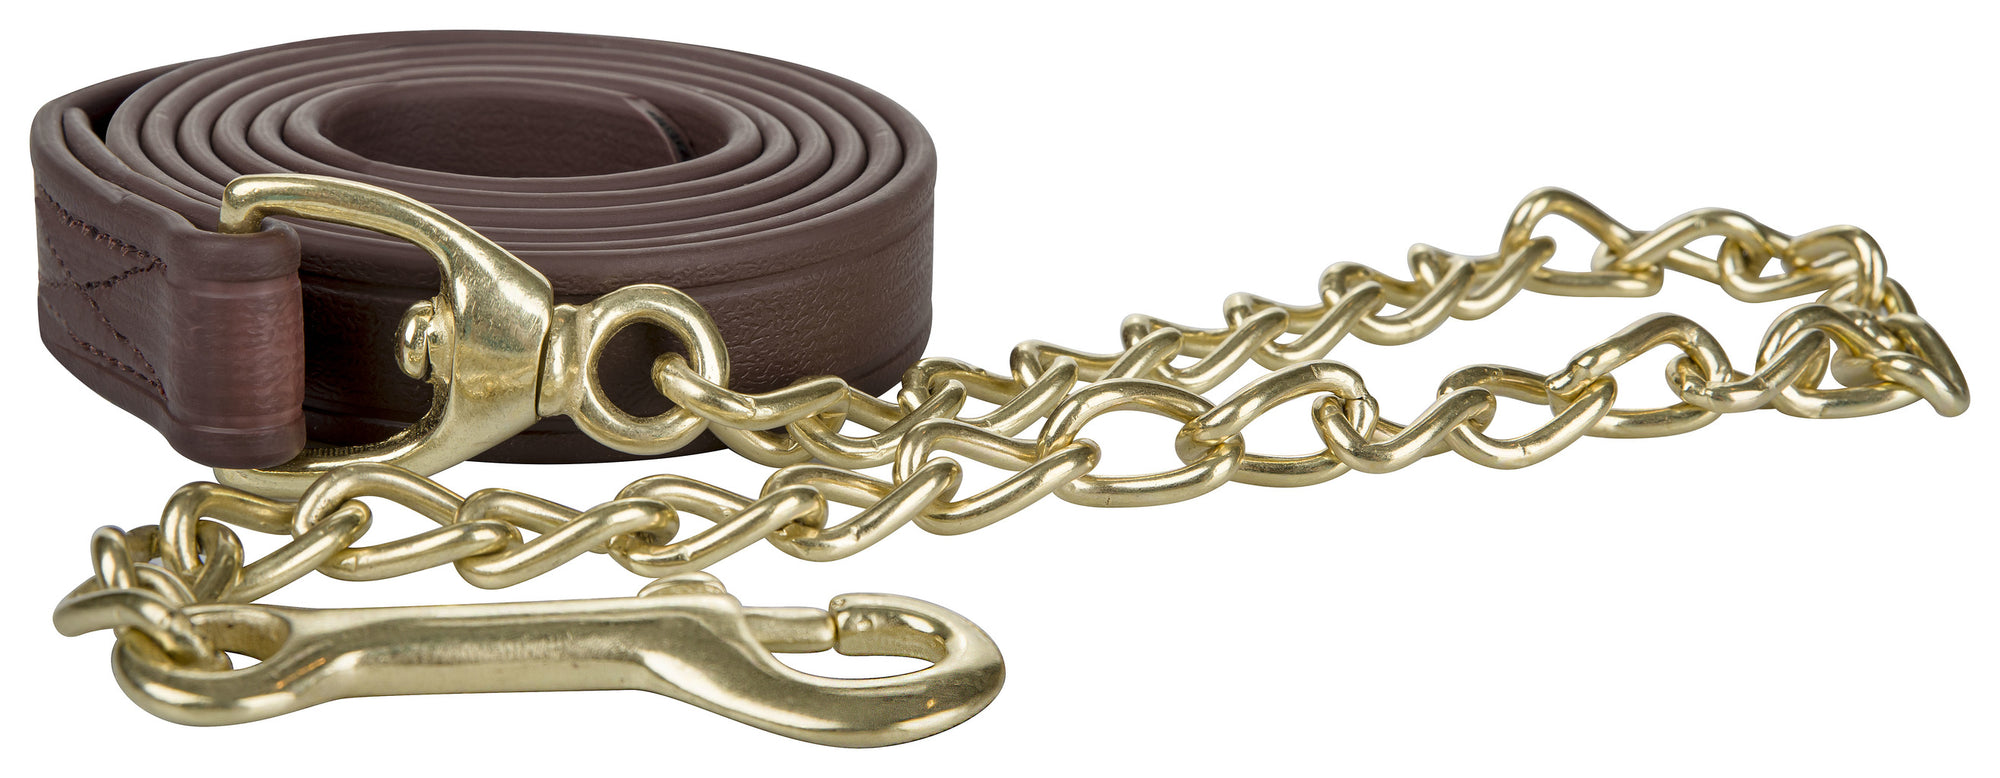 Henri De Rivel Vegan-X Lead Chain_1